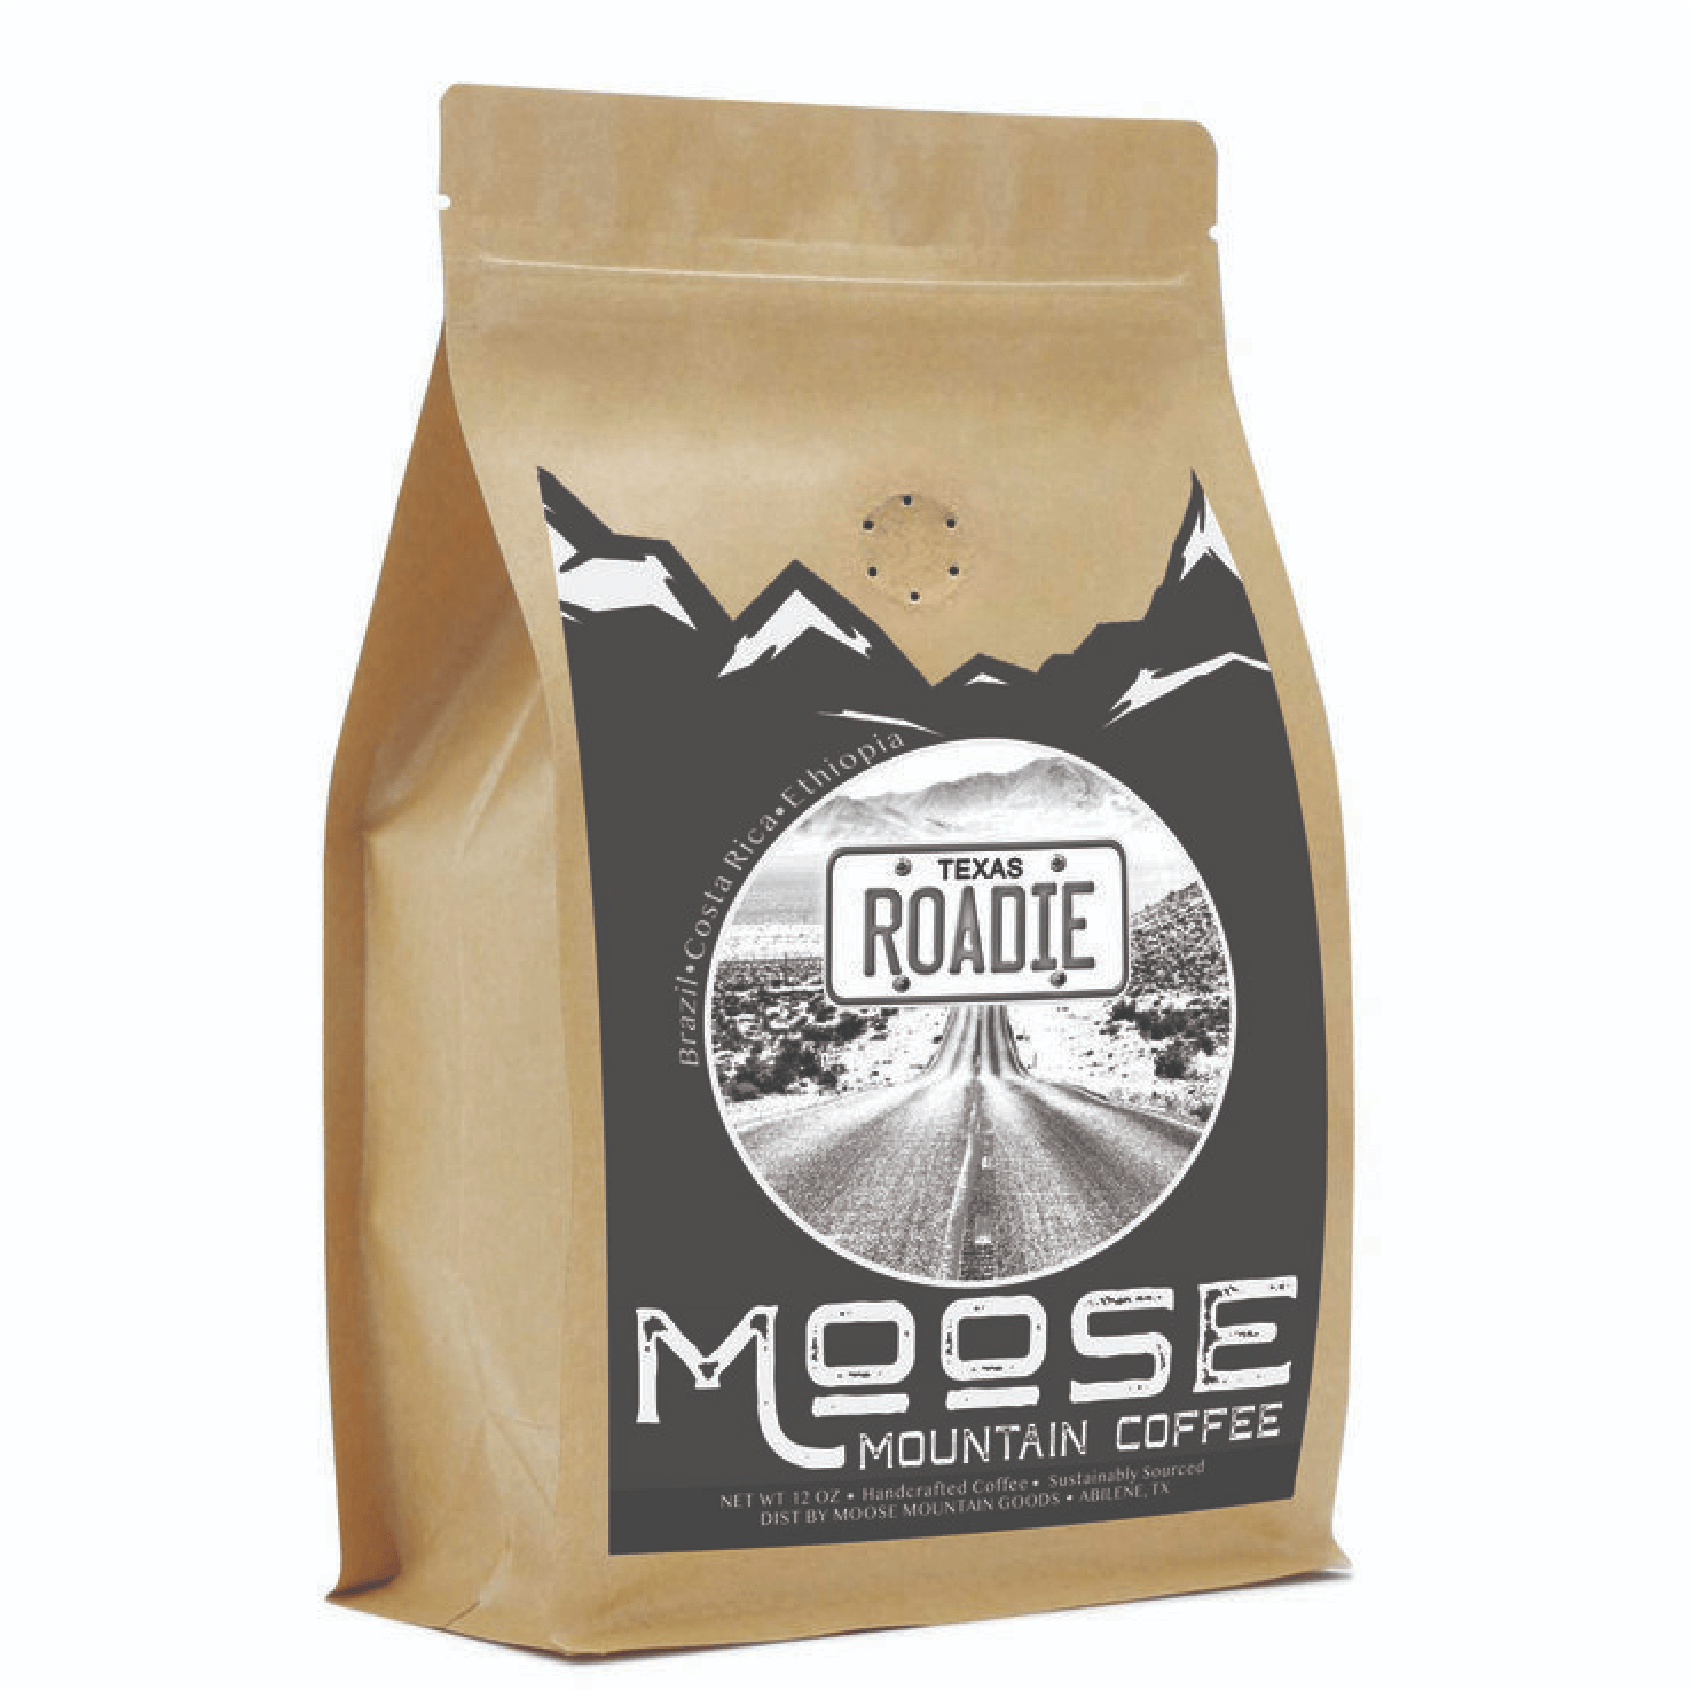 The Roadie from Moose Mountain Goods